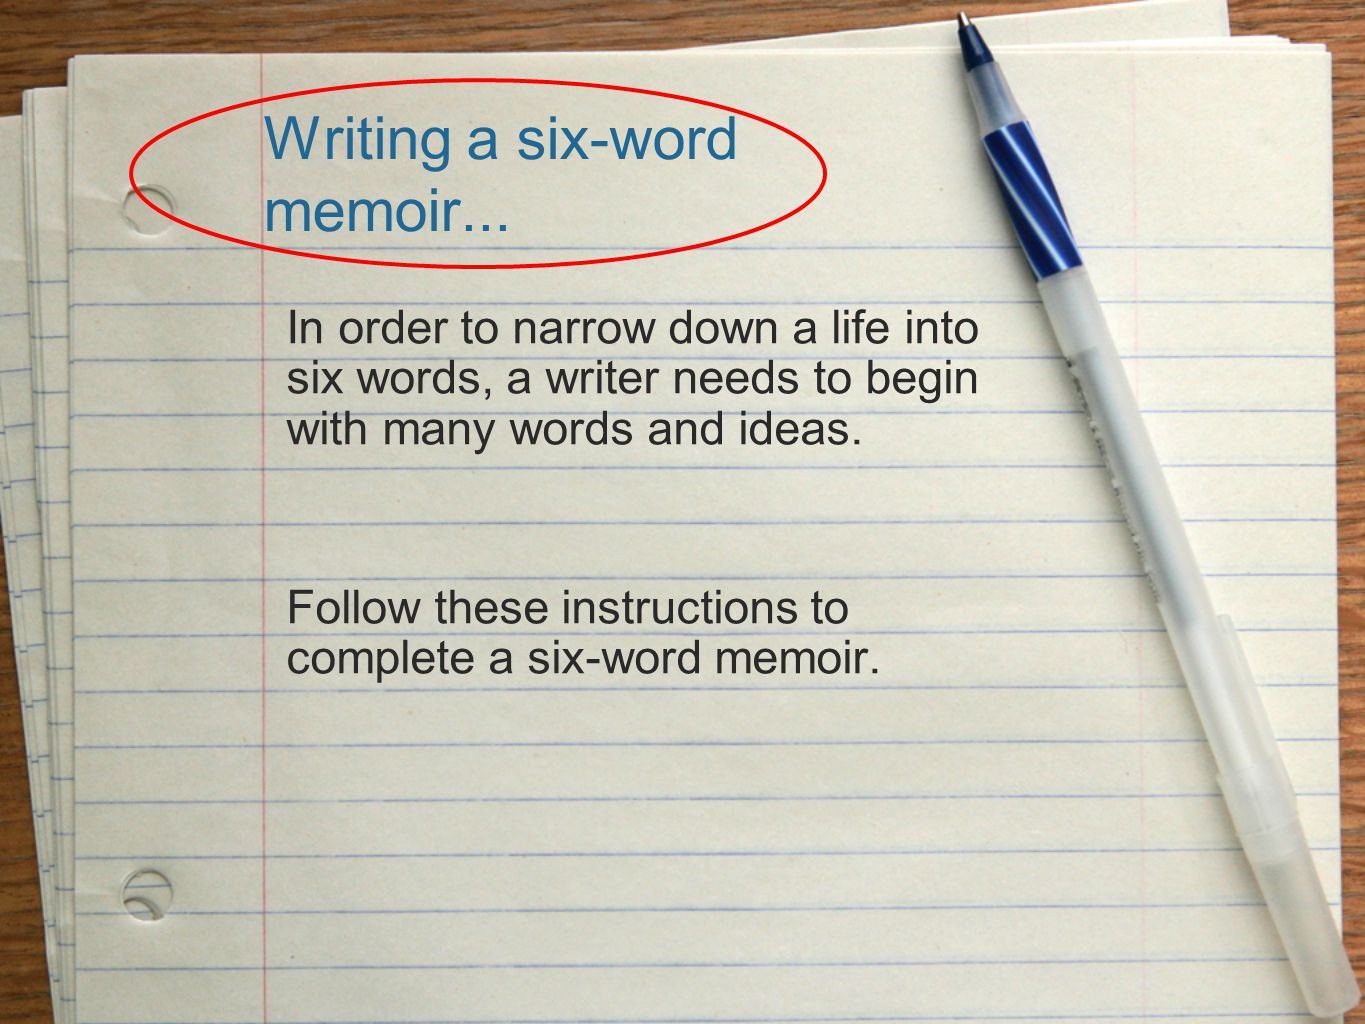 Writing a six-word memoir... In order to narrow down a life into six words, a writer needs to begin with many words and ideas. Follow these instructio